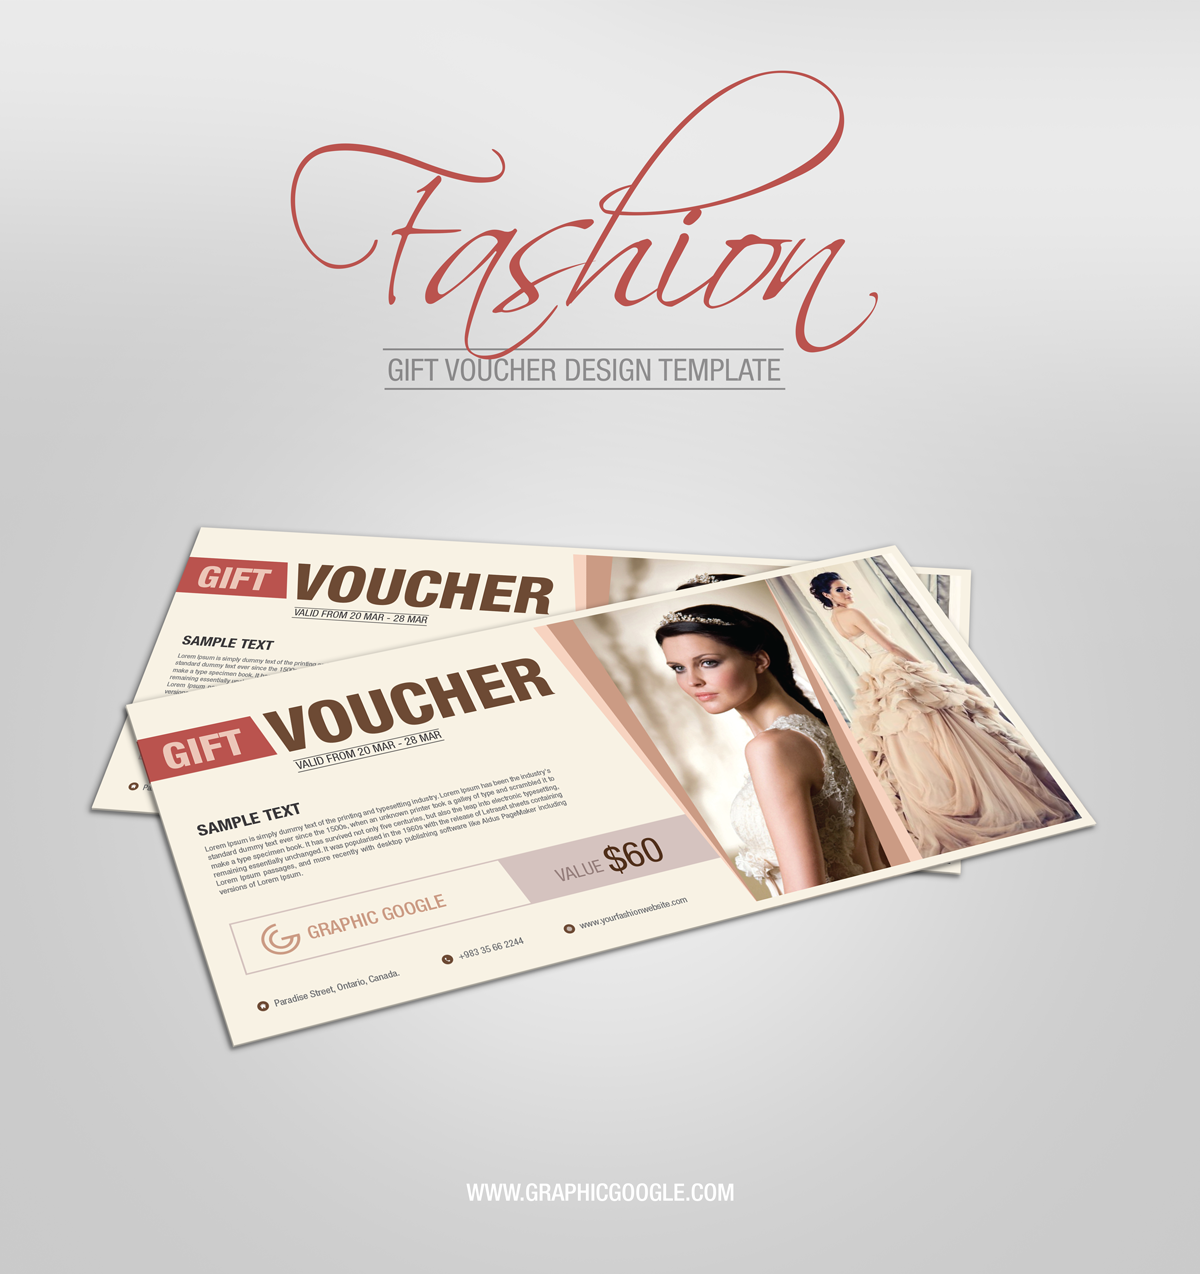 Free Fashion Gift Voucher Design Template